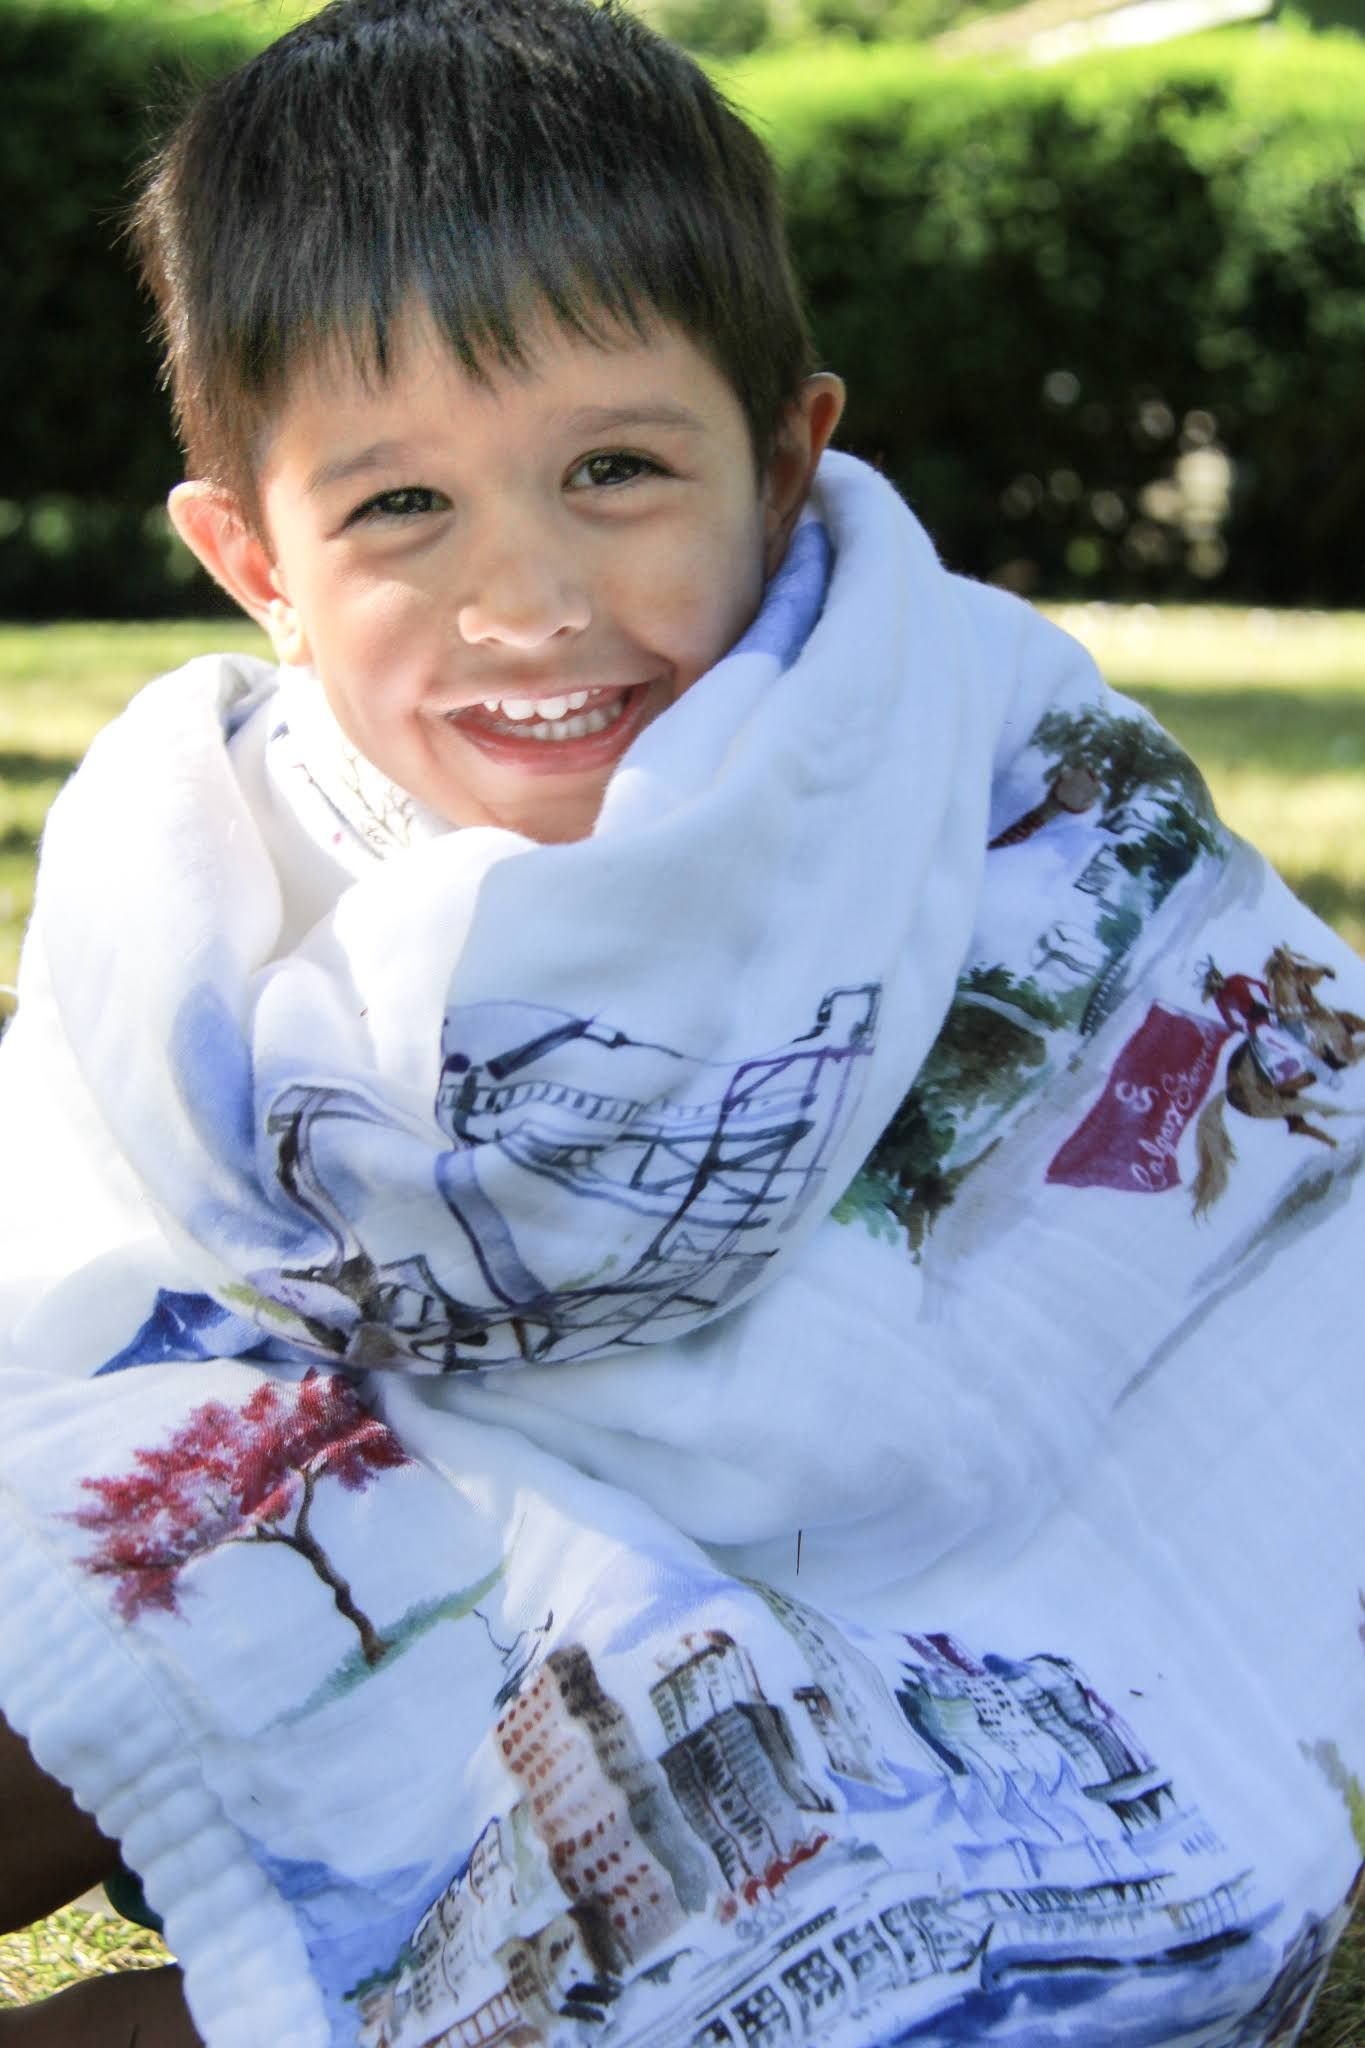 c4198e4560e Looks like he s loving wrapping himself in this warm cozy quilt with  designs featuring the great white north...Yup That s Canada  baby  babies   blanket ...